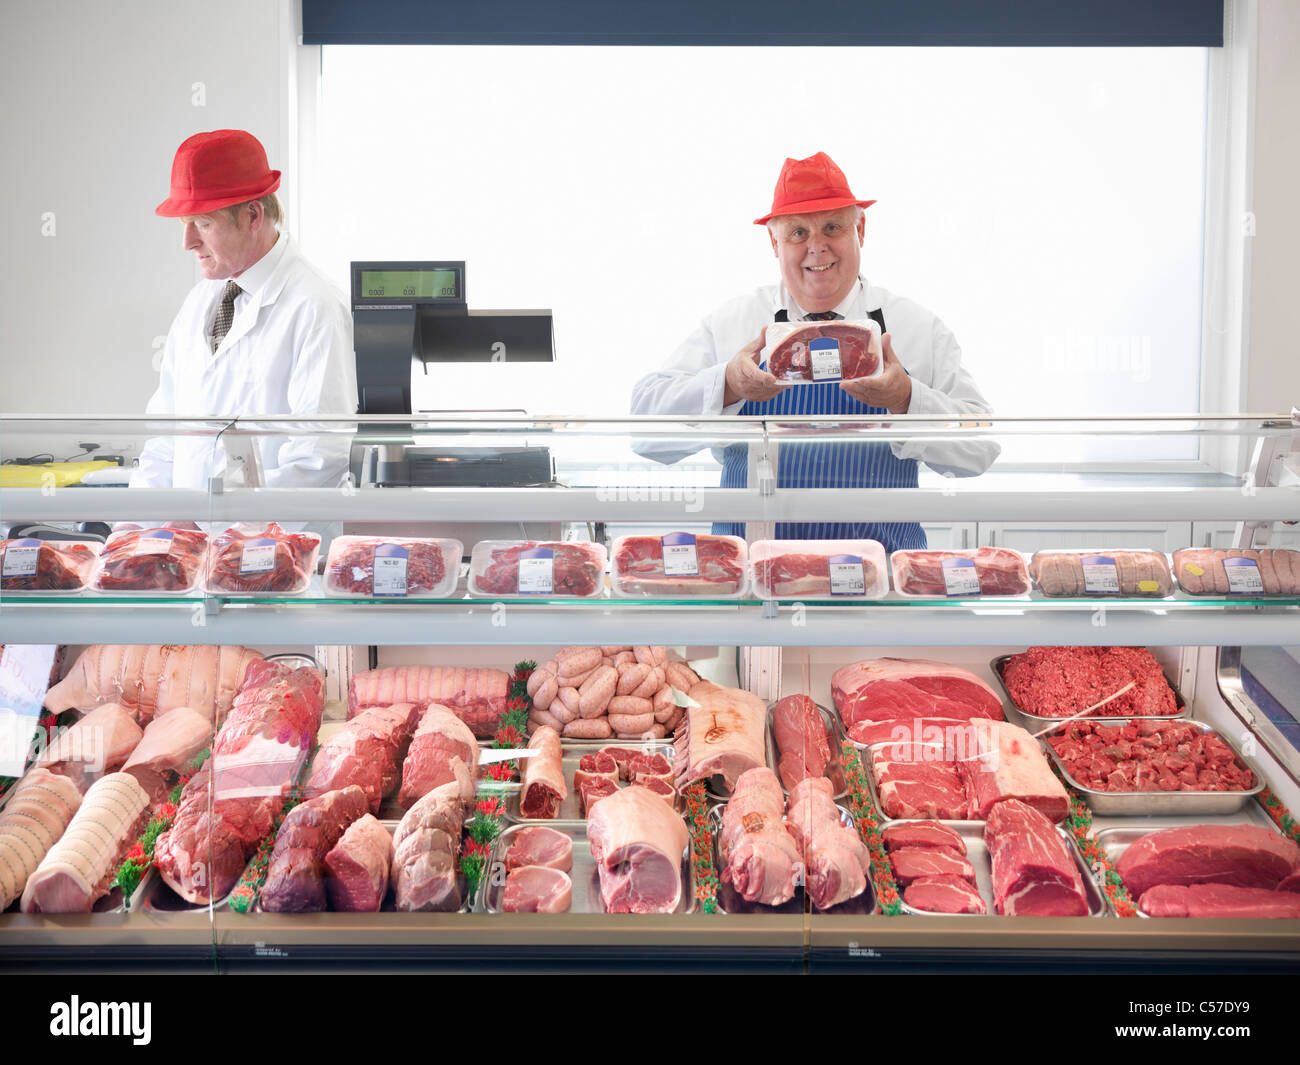 Butcher standing behind meat counter Stock Photo